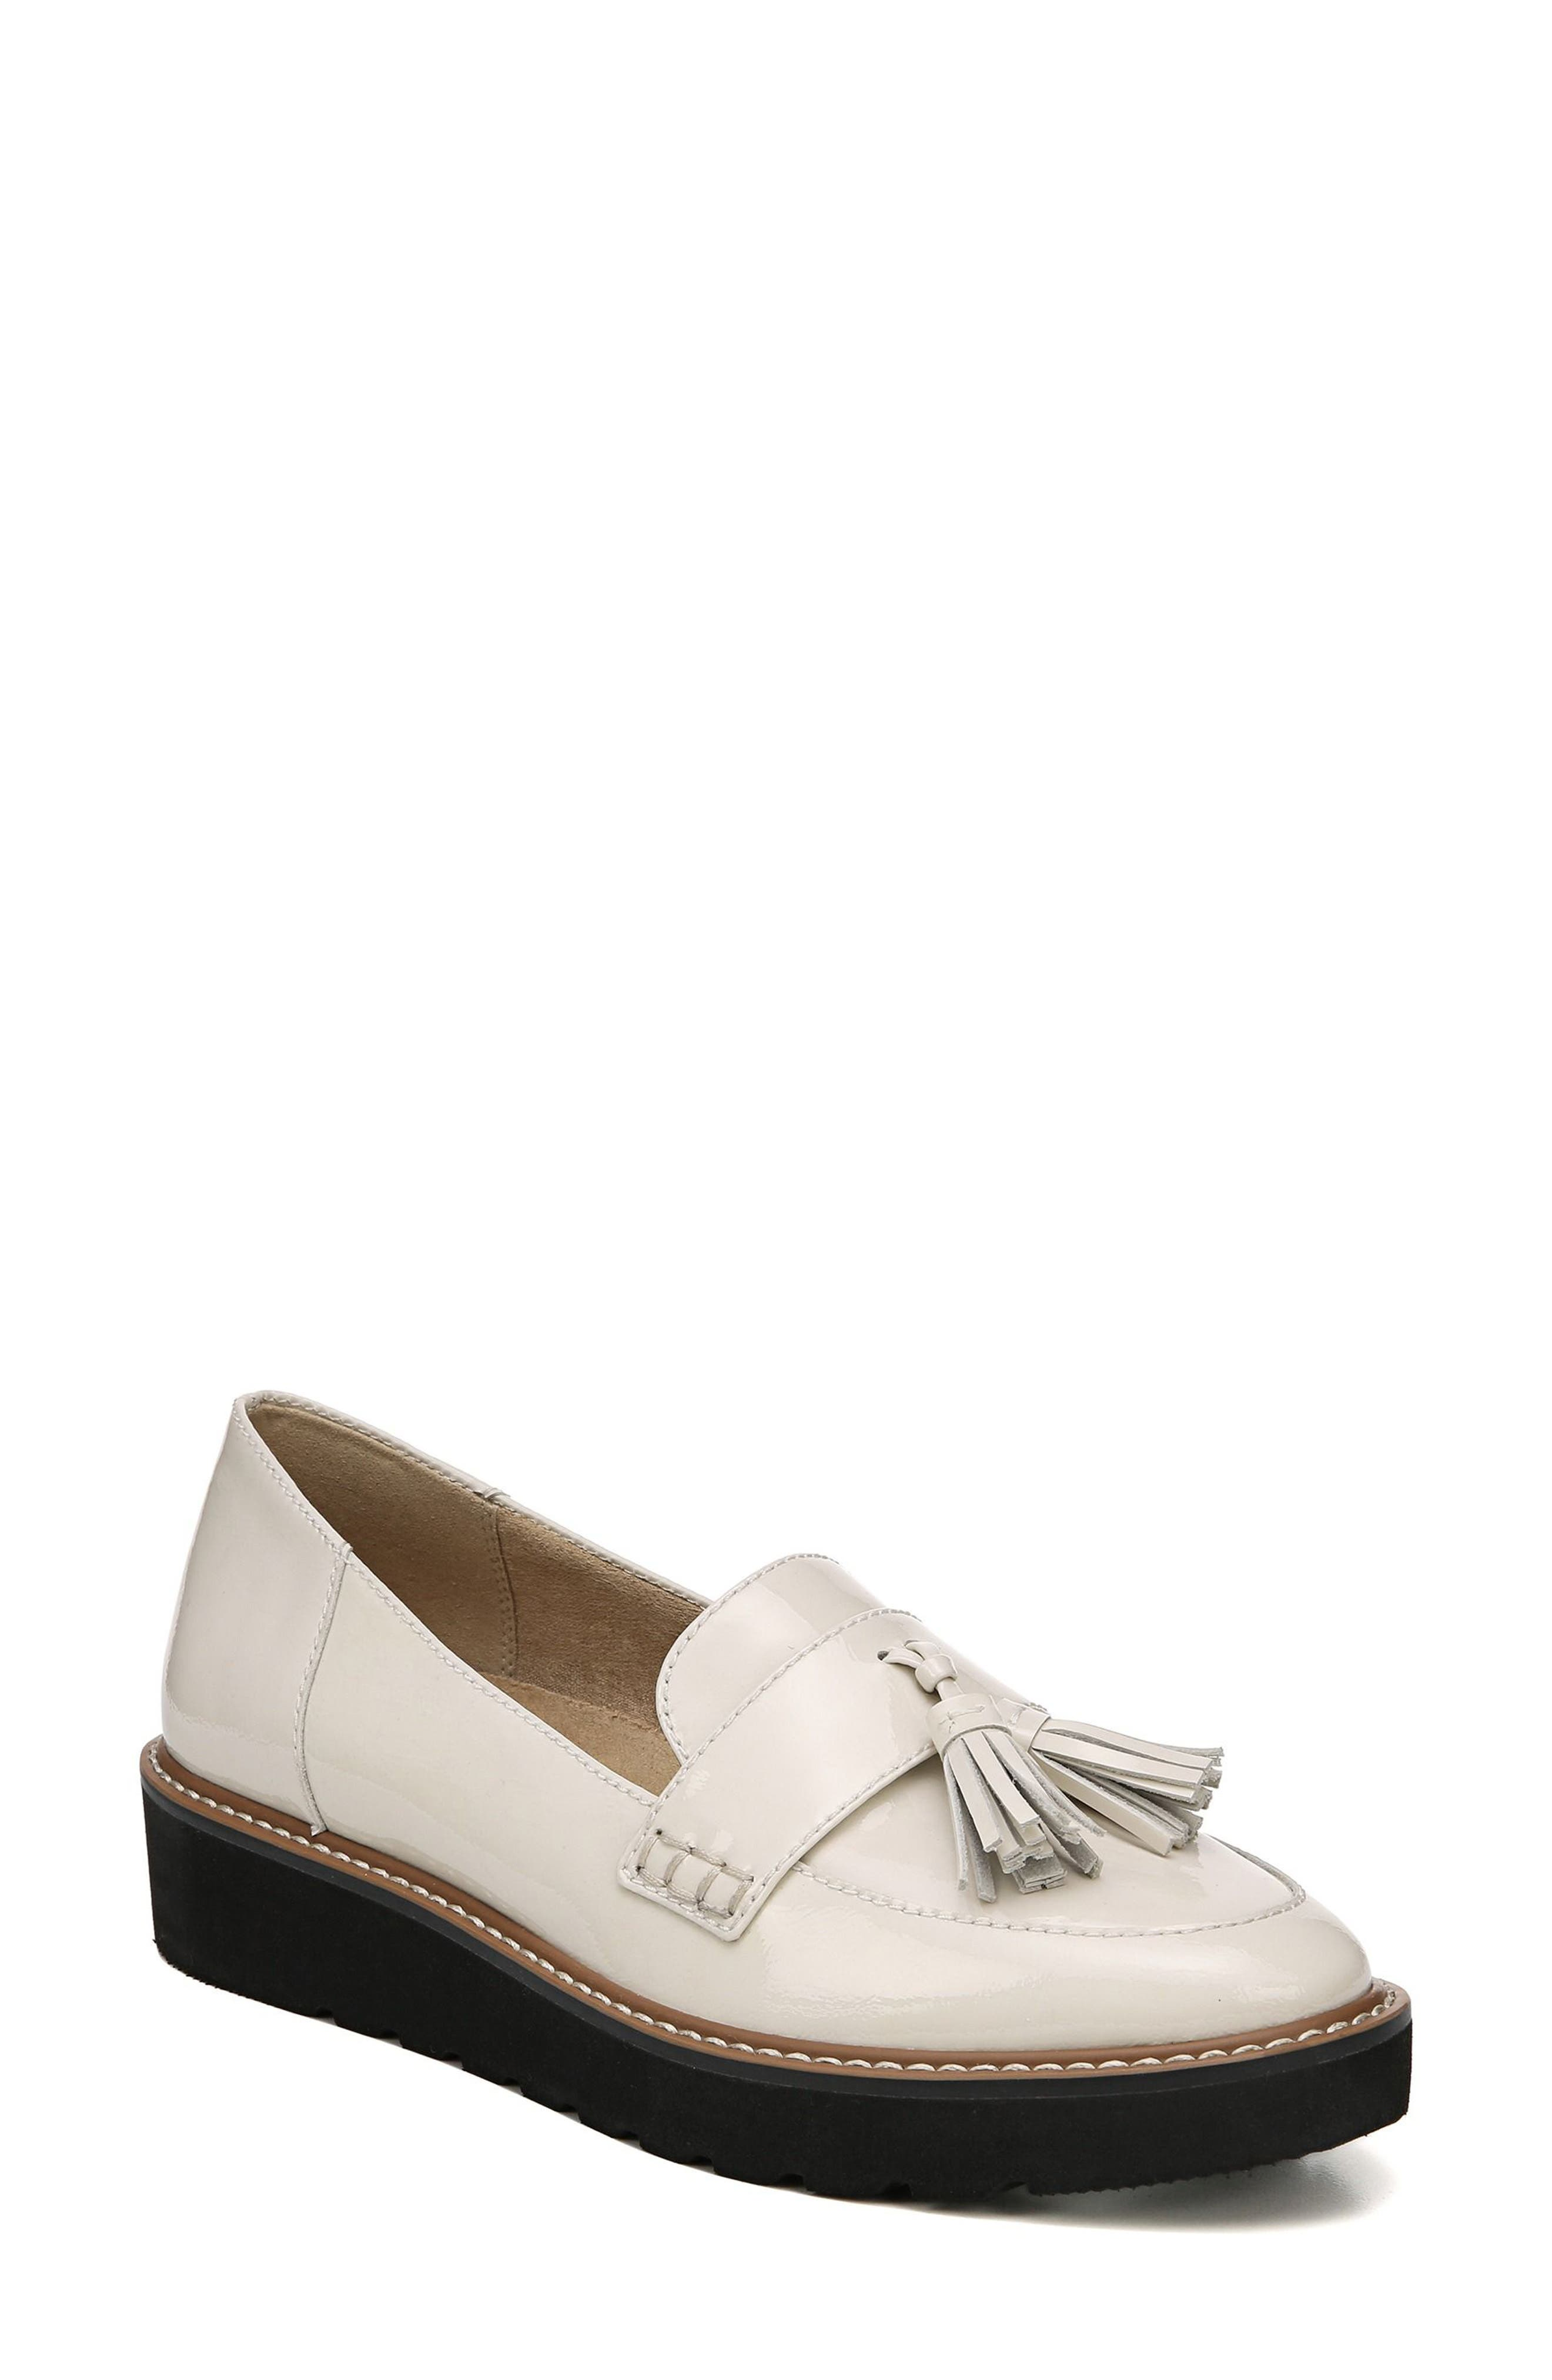 August Loafer,                             Main thumbnail 1, color,                             ALABASTER LEATHER